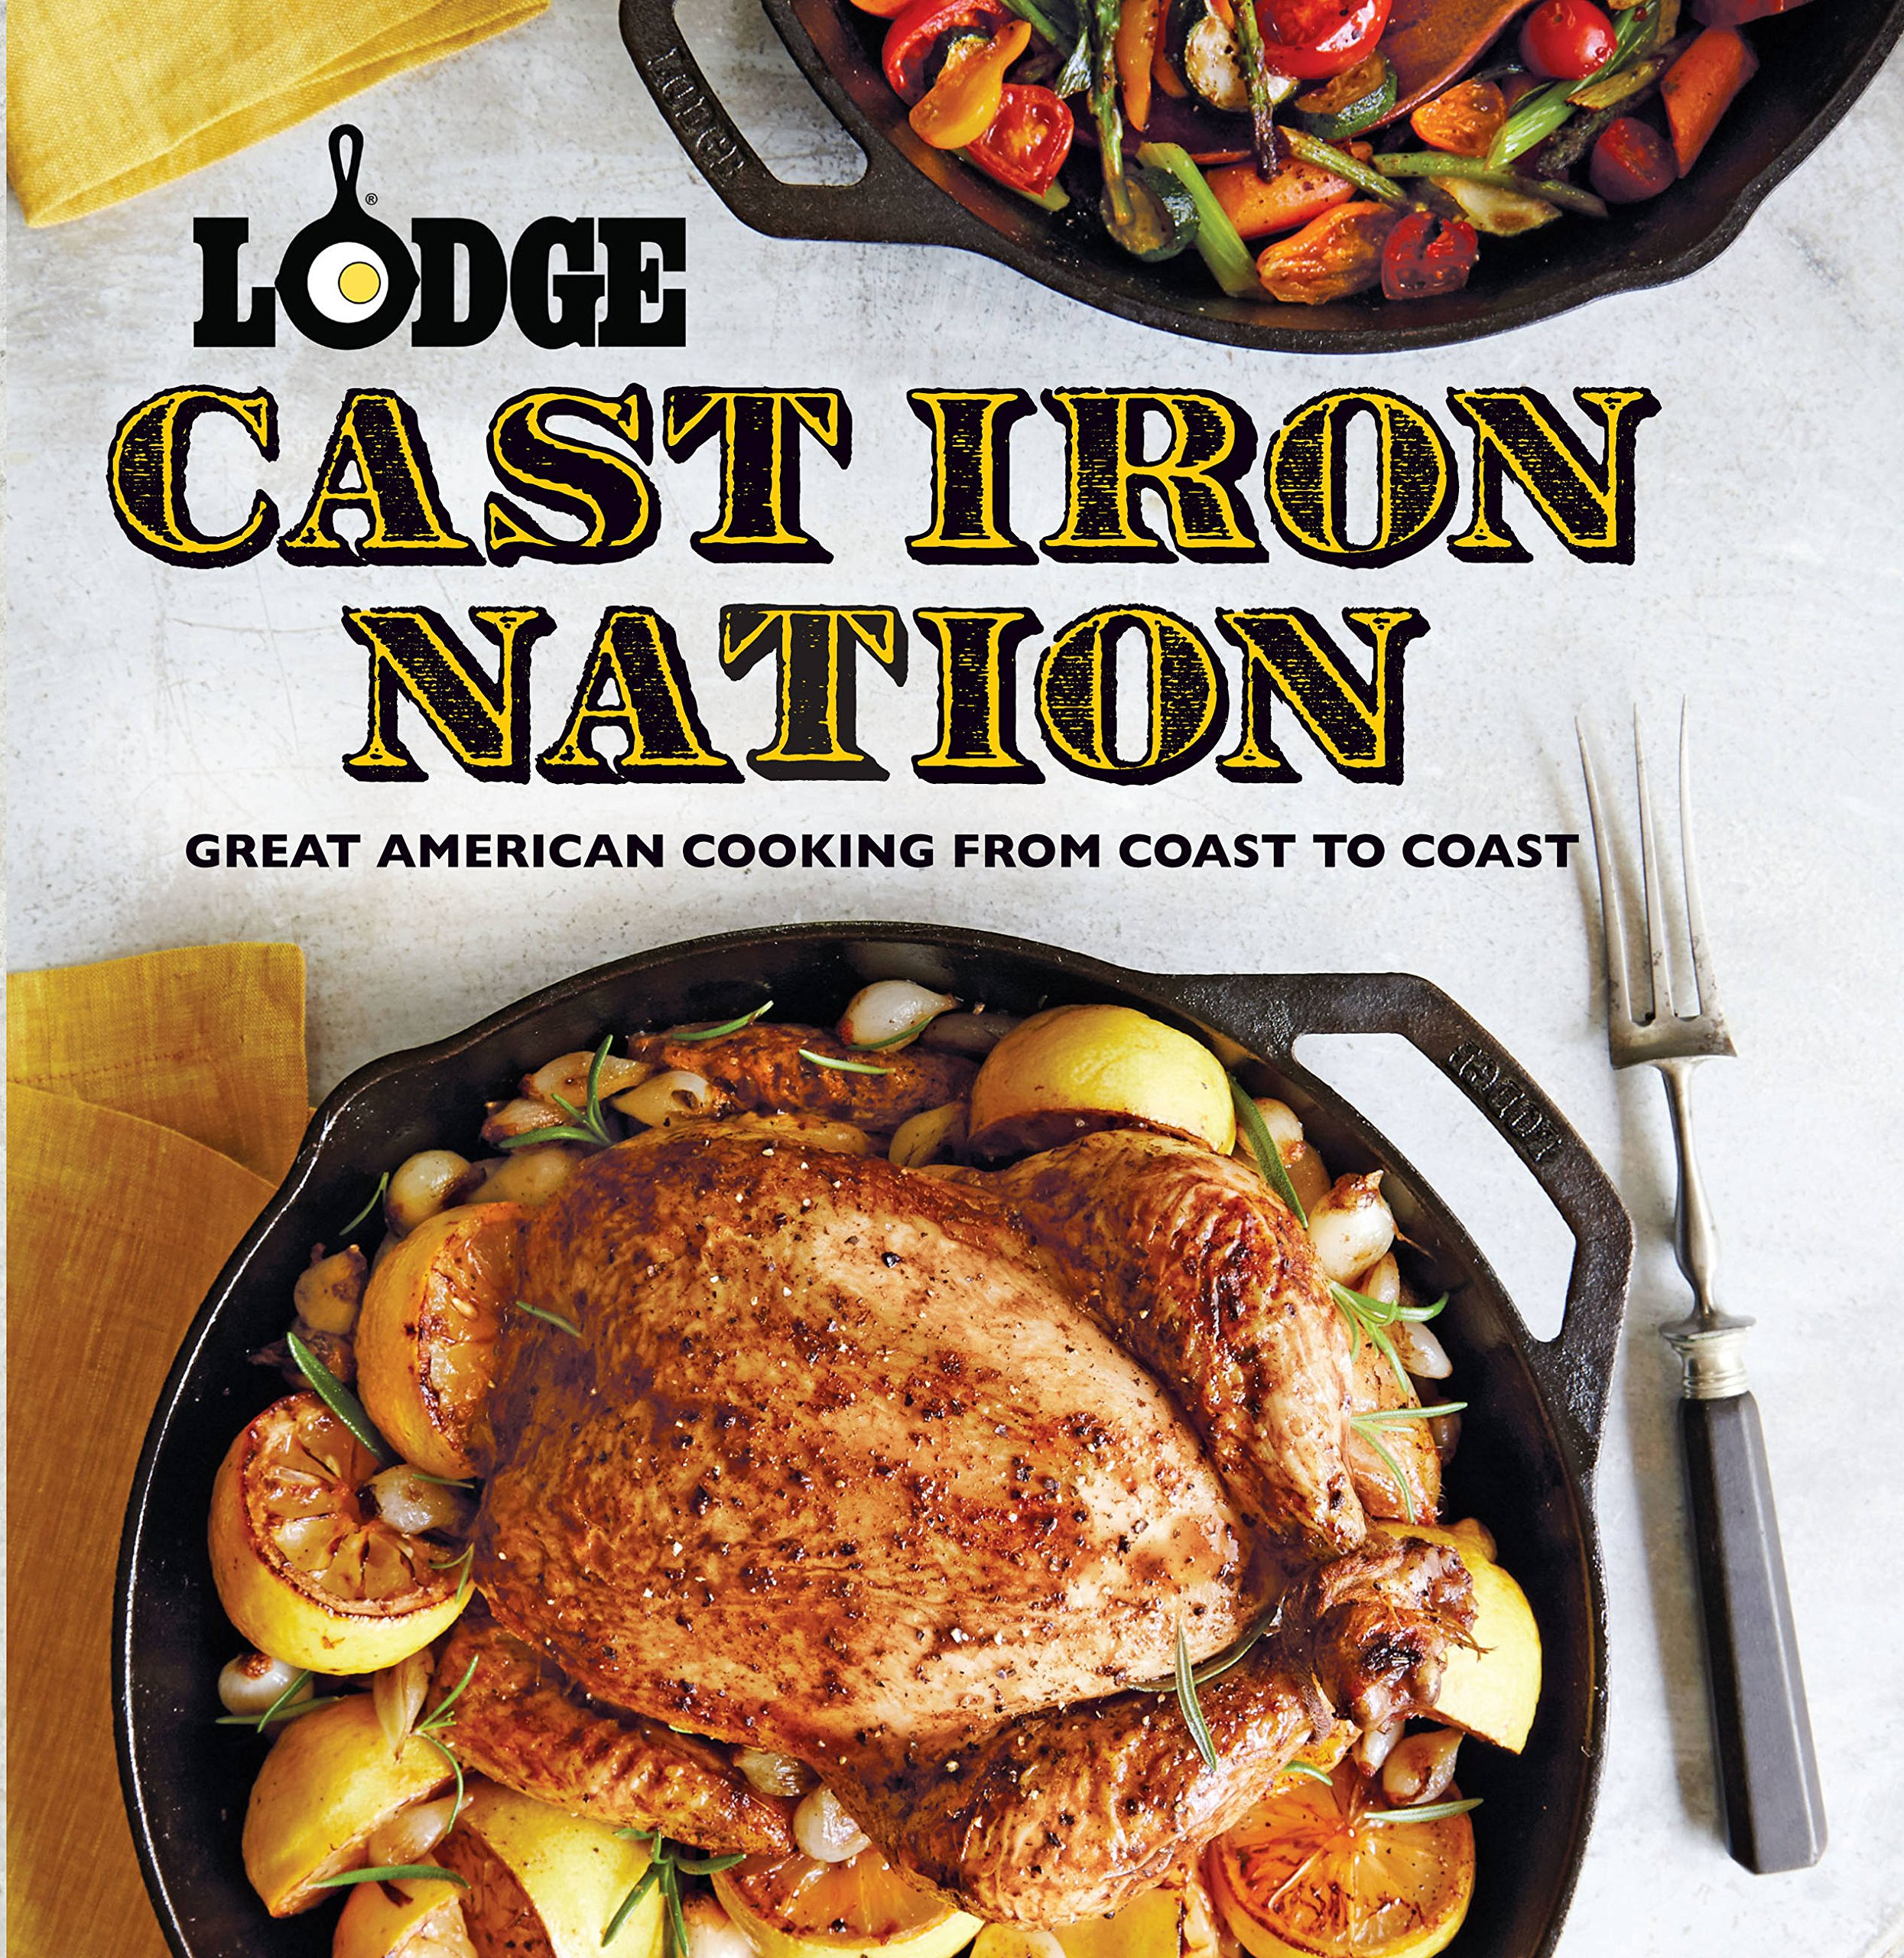 Lodge Cast Iron Nation: Great American Cooking from Coast to Coast: Amazon.es: The Lodge Company: Libros en idiomas extranjeros